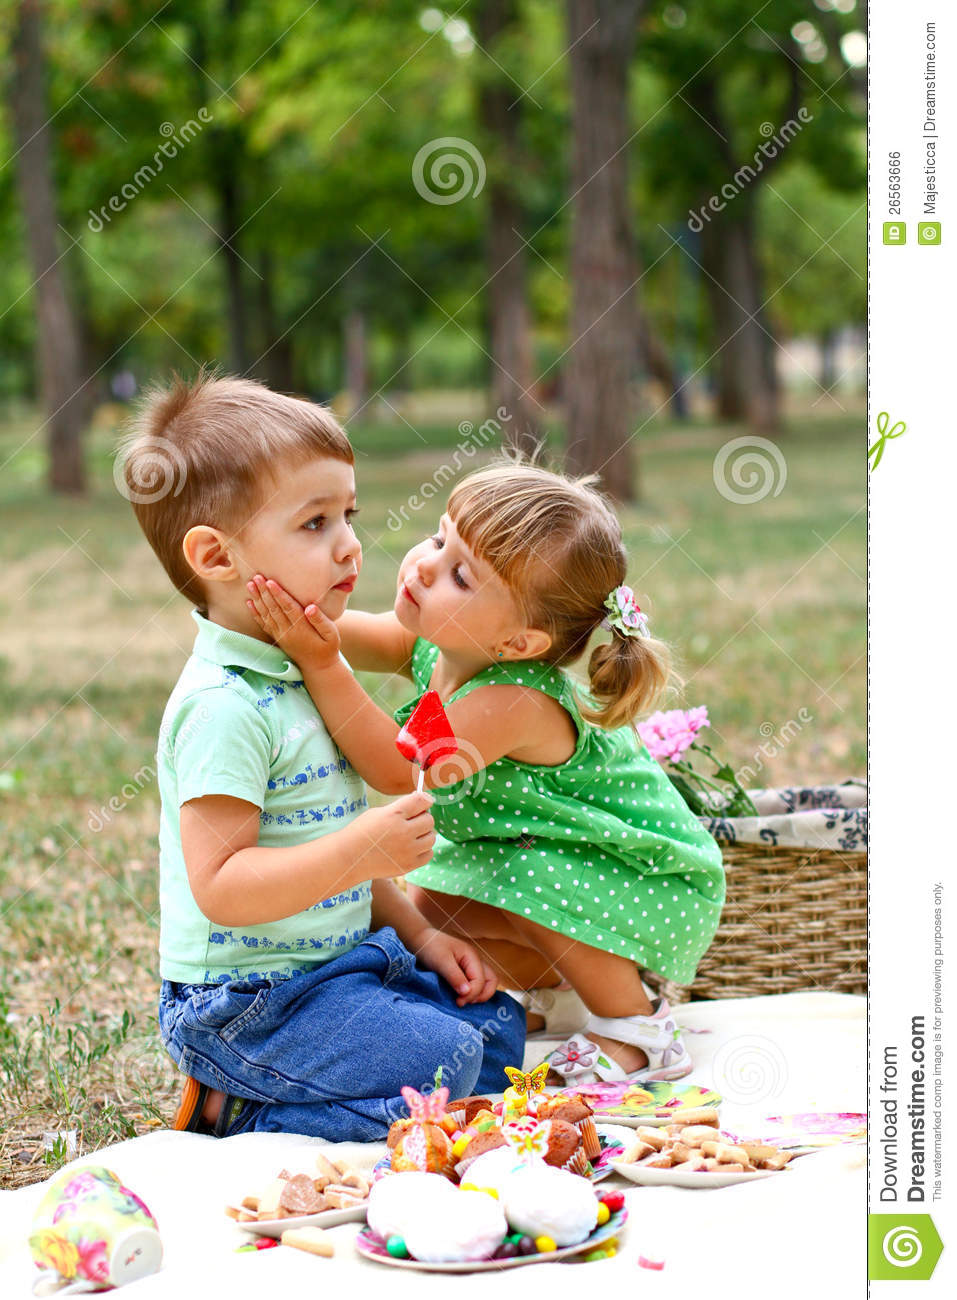 Caucasian Little Boy And Girl Eating Sweets Royalty Free